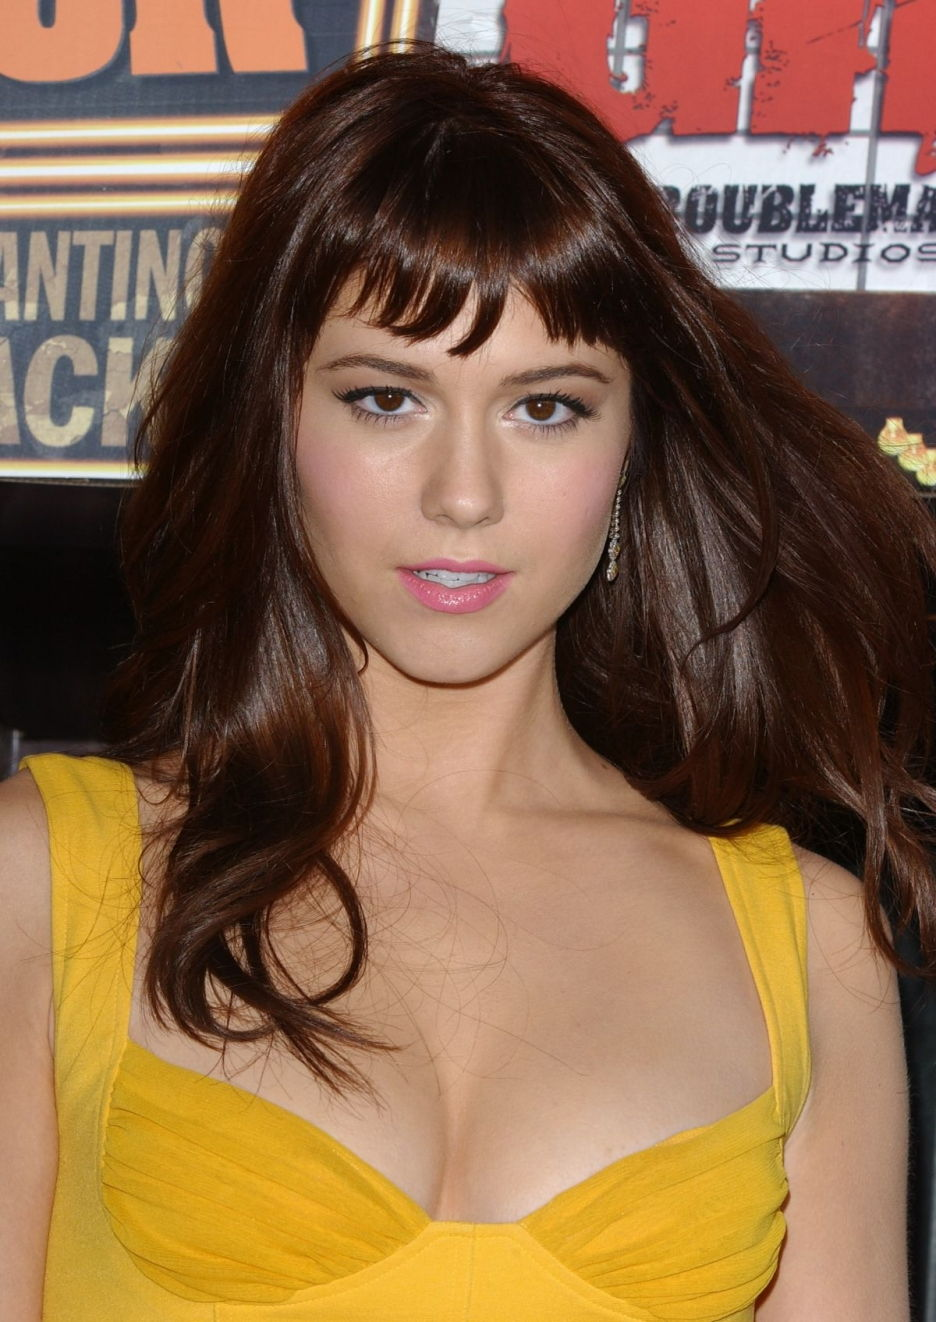 mary elizabeth winstead bra size age weight height